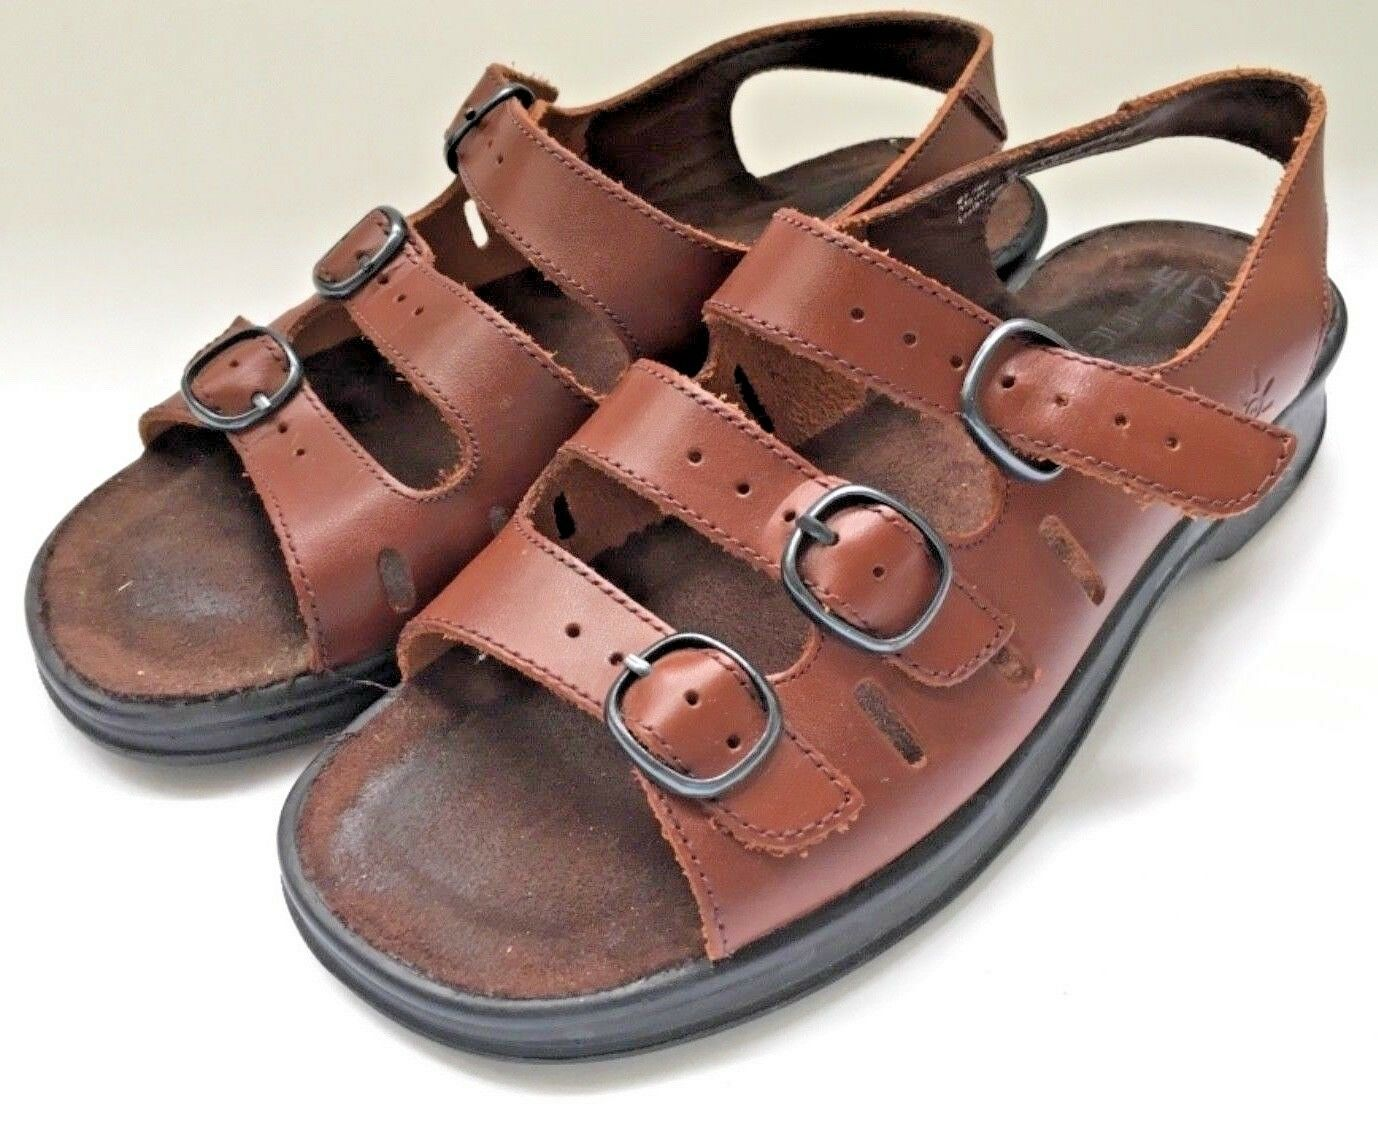 fa5f527da9 Clarks Springers Size 7 1/2 M Comfort Brown and 50 similar items